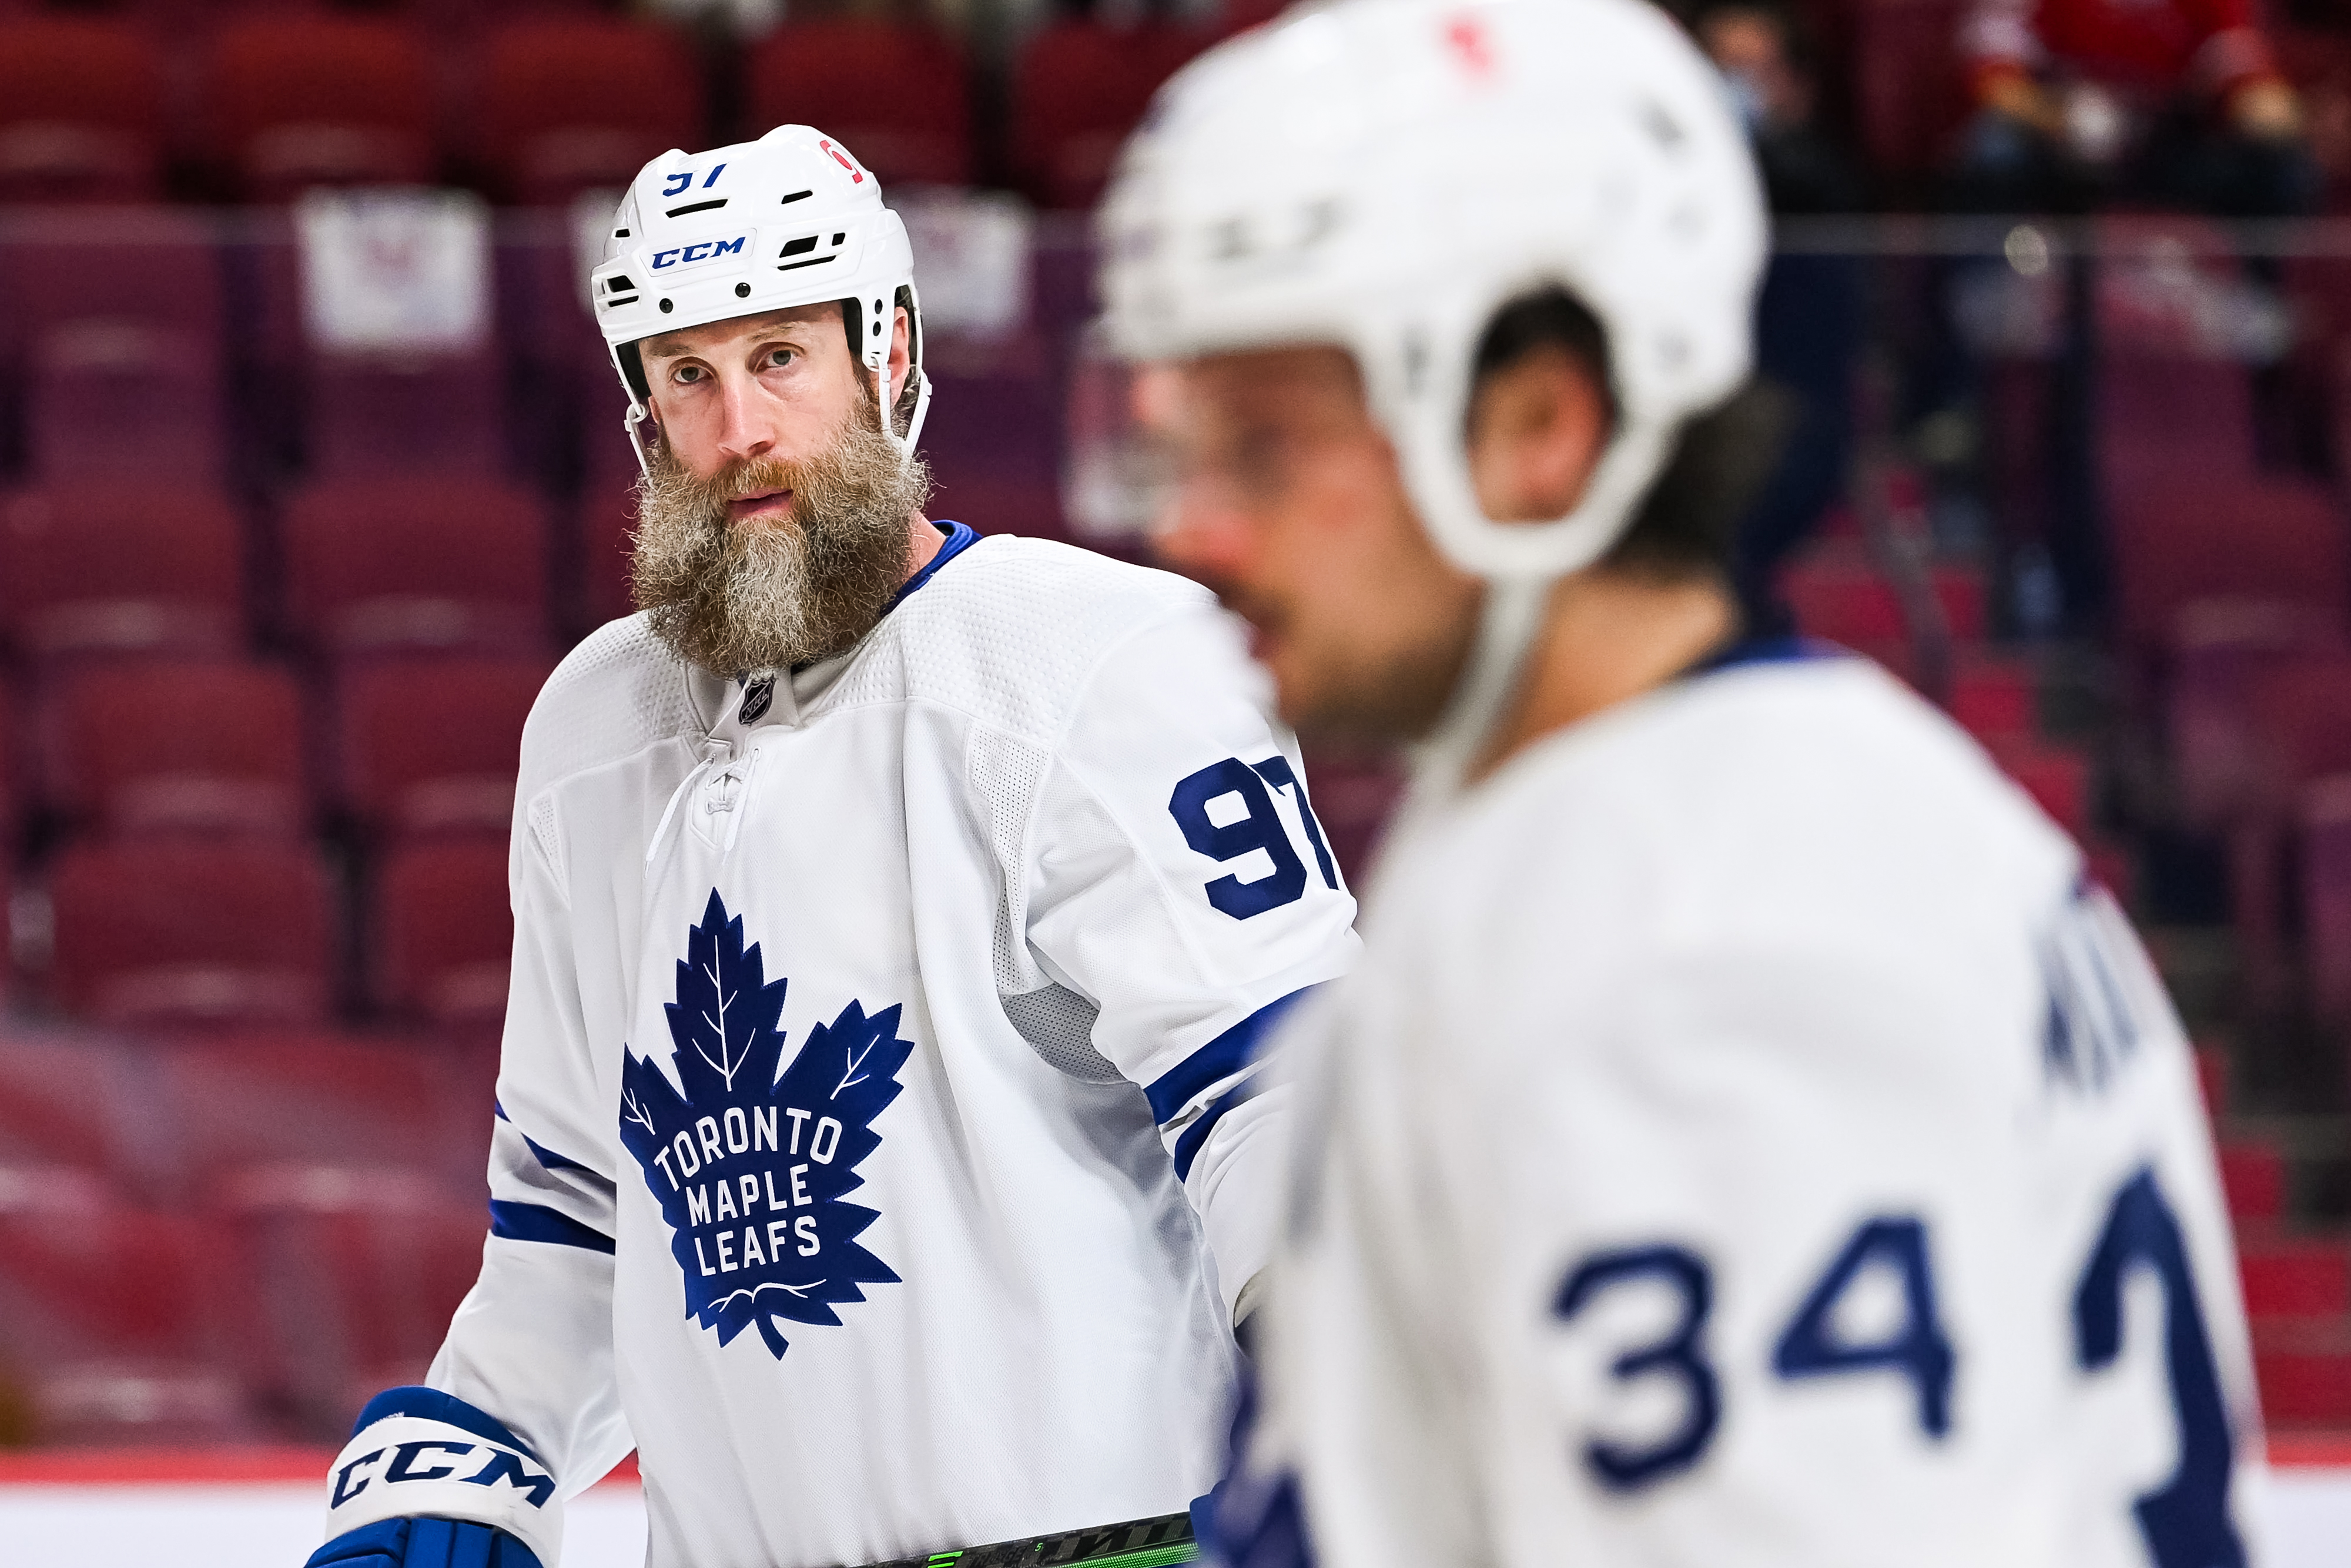 Look on Toronto Maple Leafs center Joe Thornton (97) during the NHL Stanley Cup Playoffs first round game 6 between the Toronto Maple Leafs versus the Montreal Canadiens on May 29, 2021, at Bell Centre in Montreal, QC